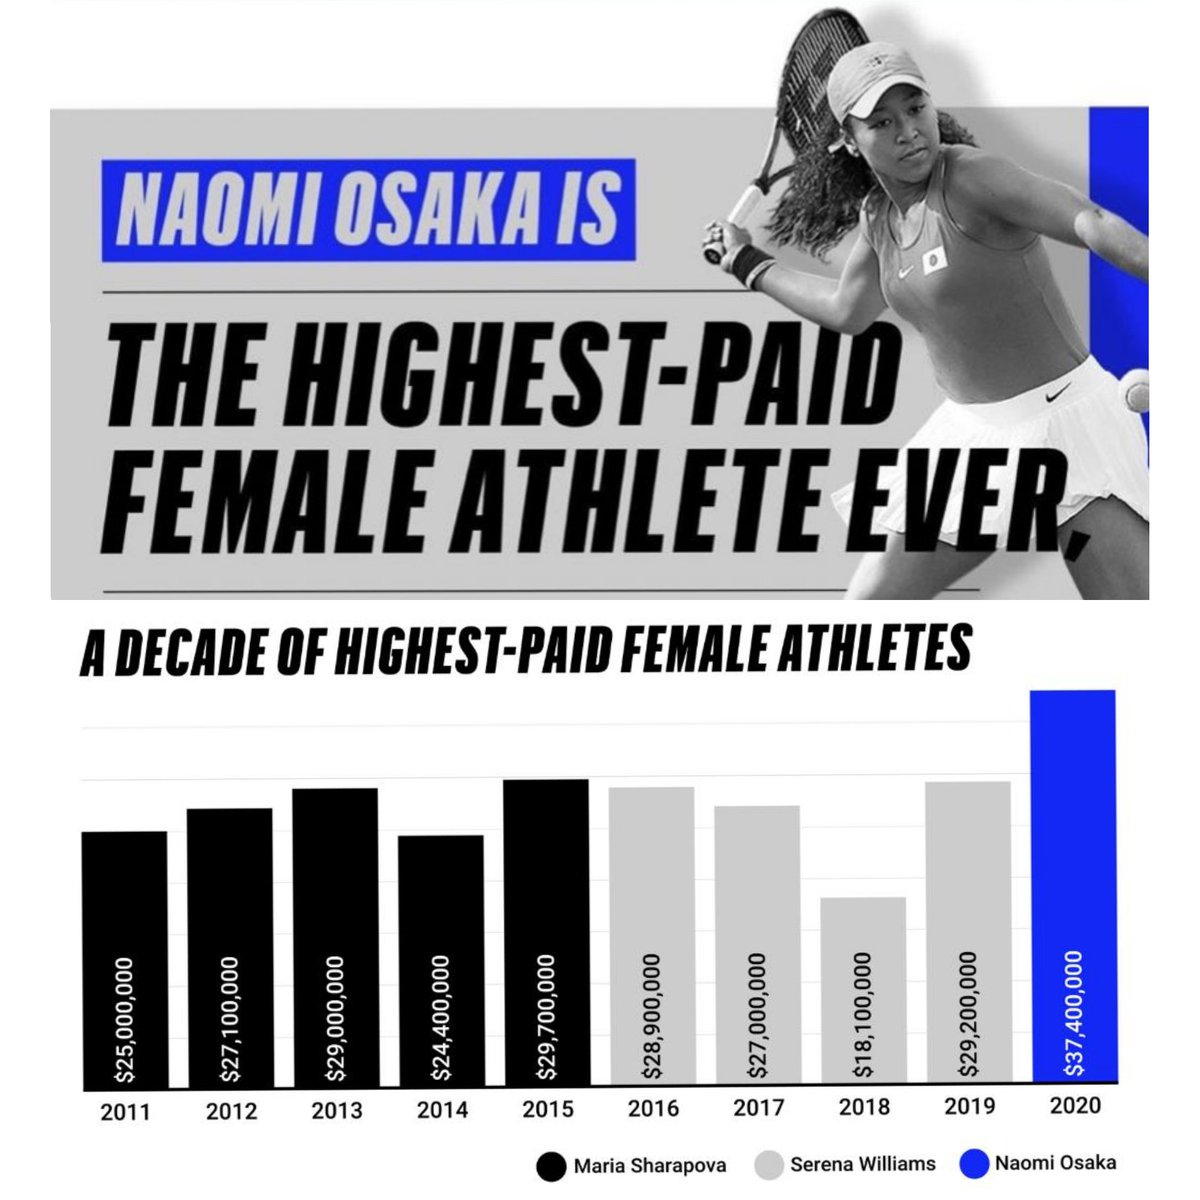 Naomi Osaka tops Serena Williams as world's highest-paid female athlete.  The Japanese star made $37.4 million in the past 12 months for an earnings record, Forbes magazine reported.  #Tennis pic.twitter.com/6jiCzWtfz9